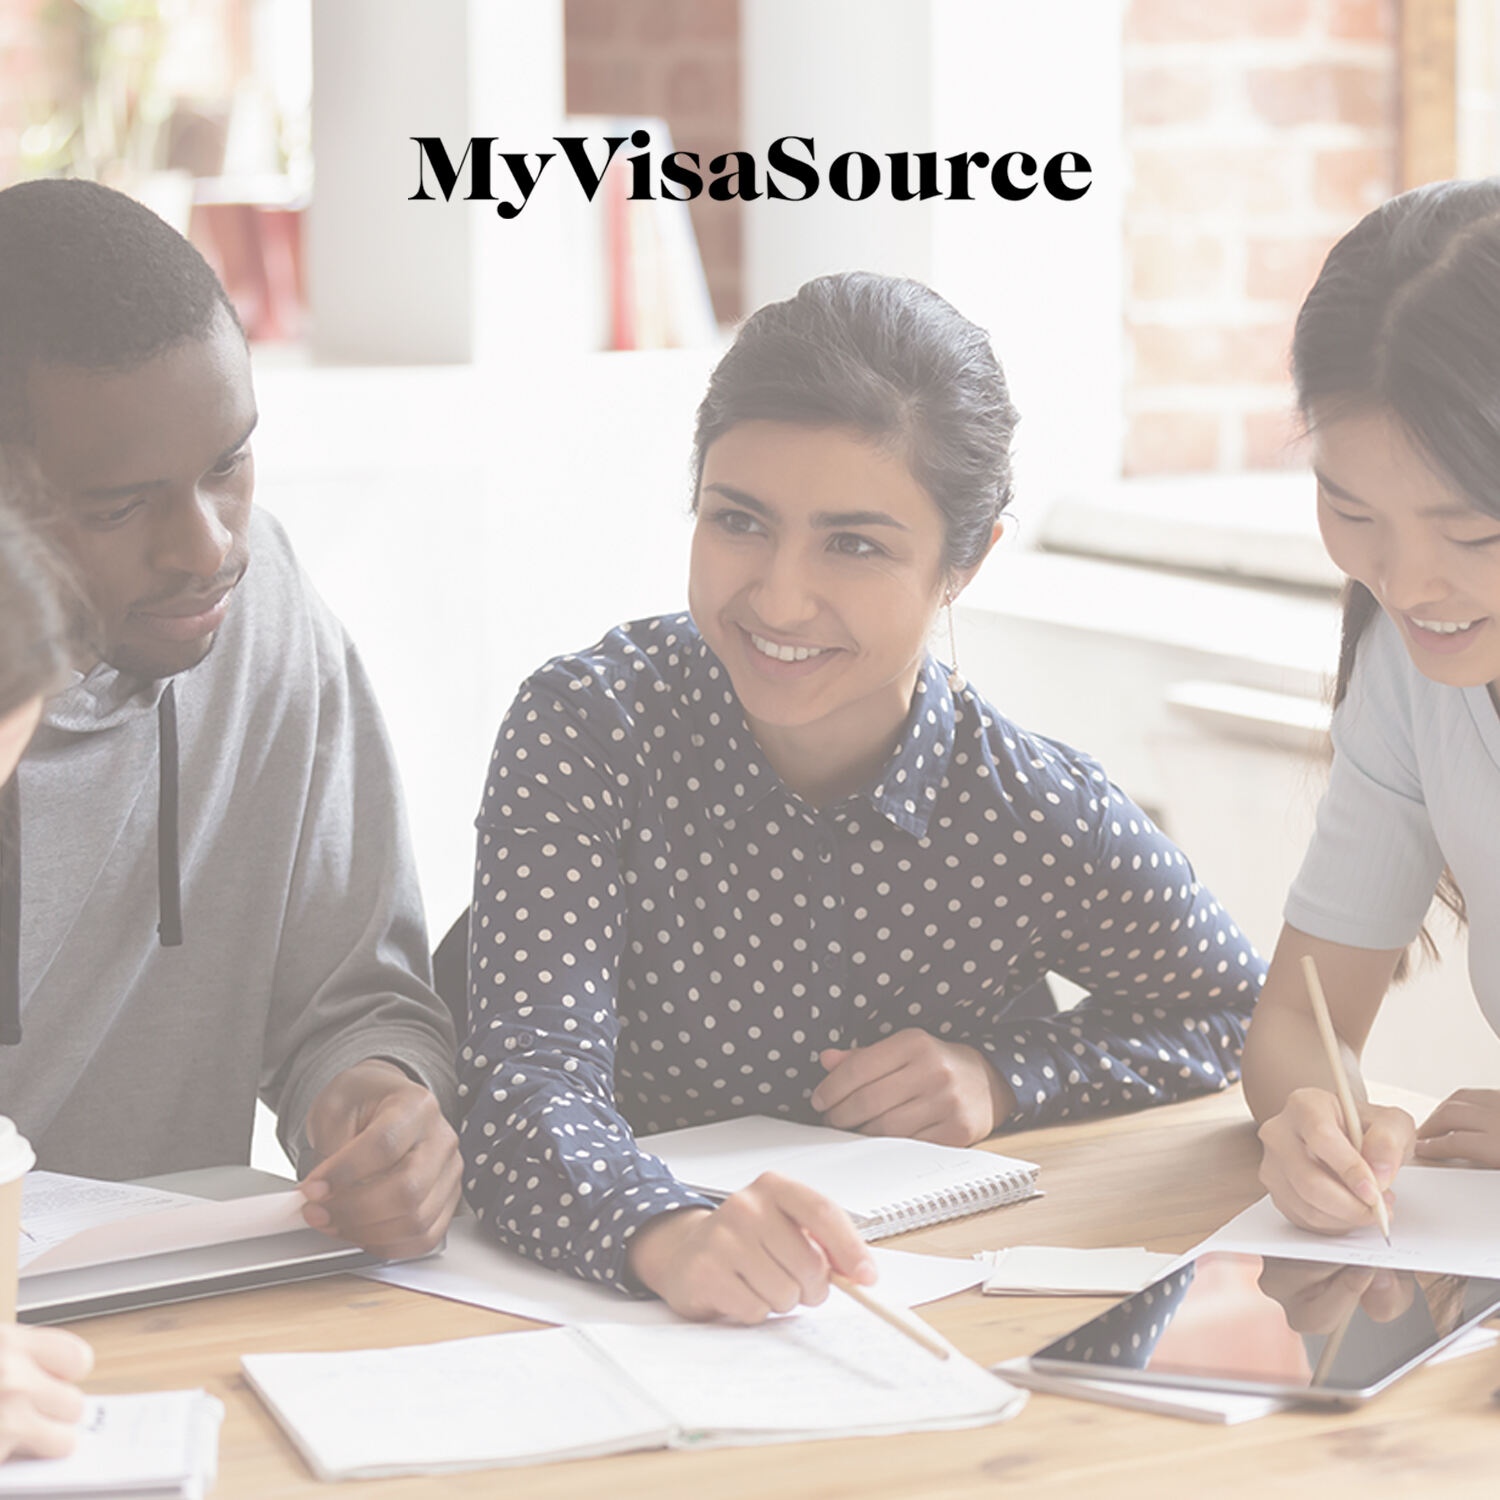 three-students-studying-together-my-visa-source-200kb